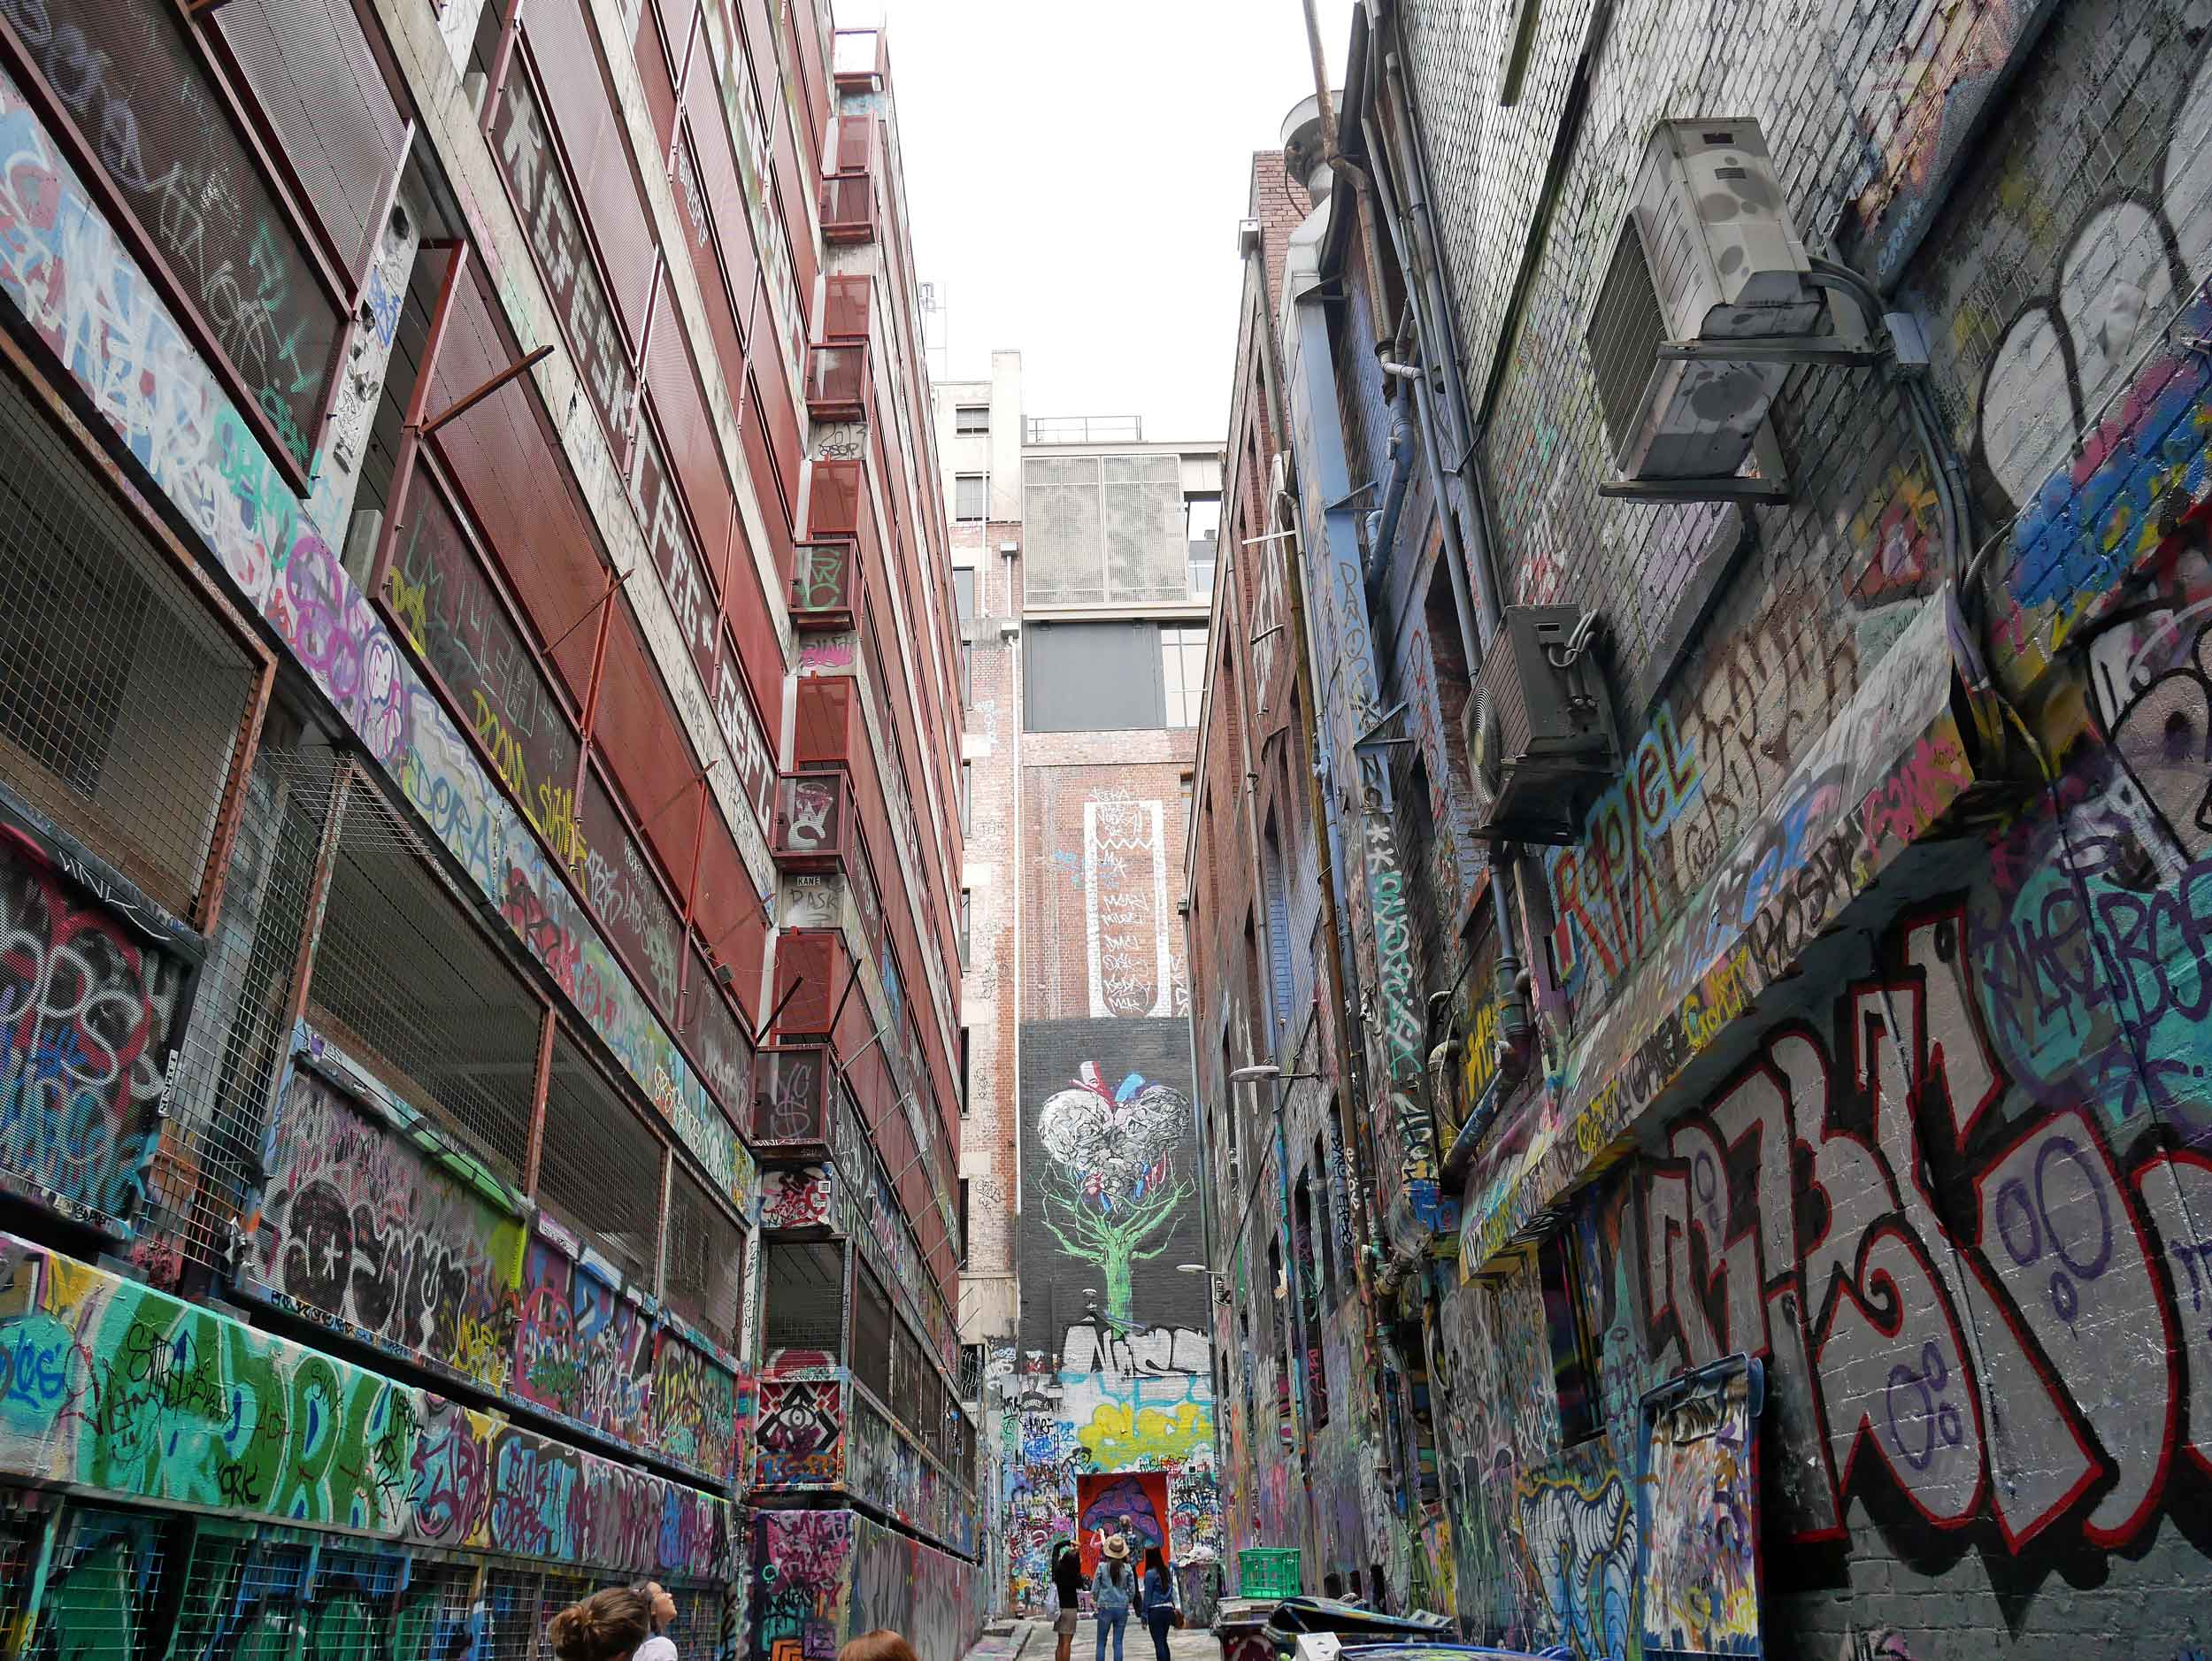 If Melbourne is known as one of the world's great street art capitals, then Hoiser Lane is the heart of it all (Jan 26).